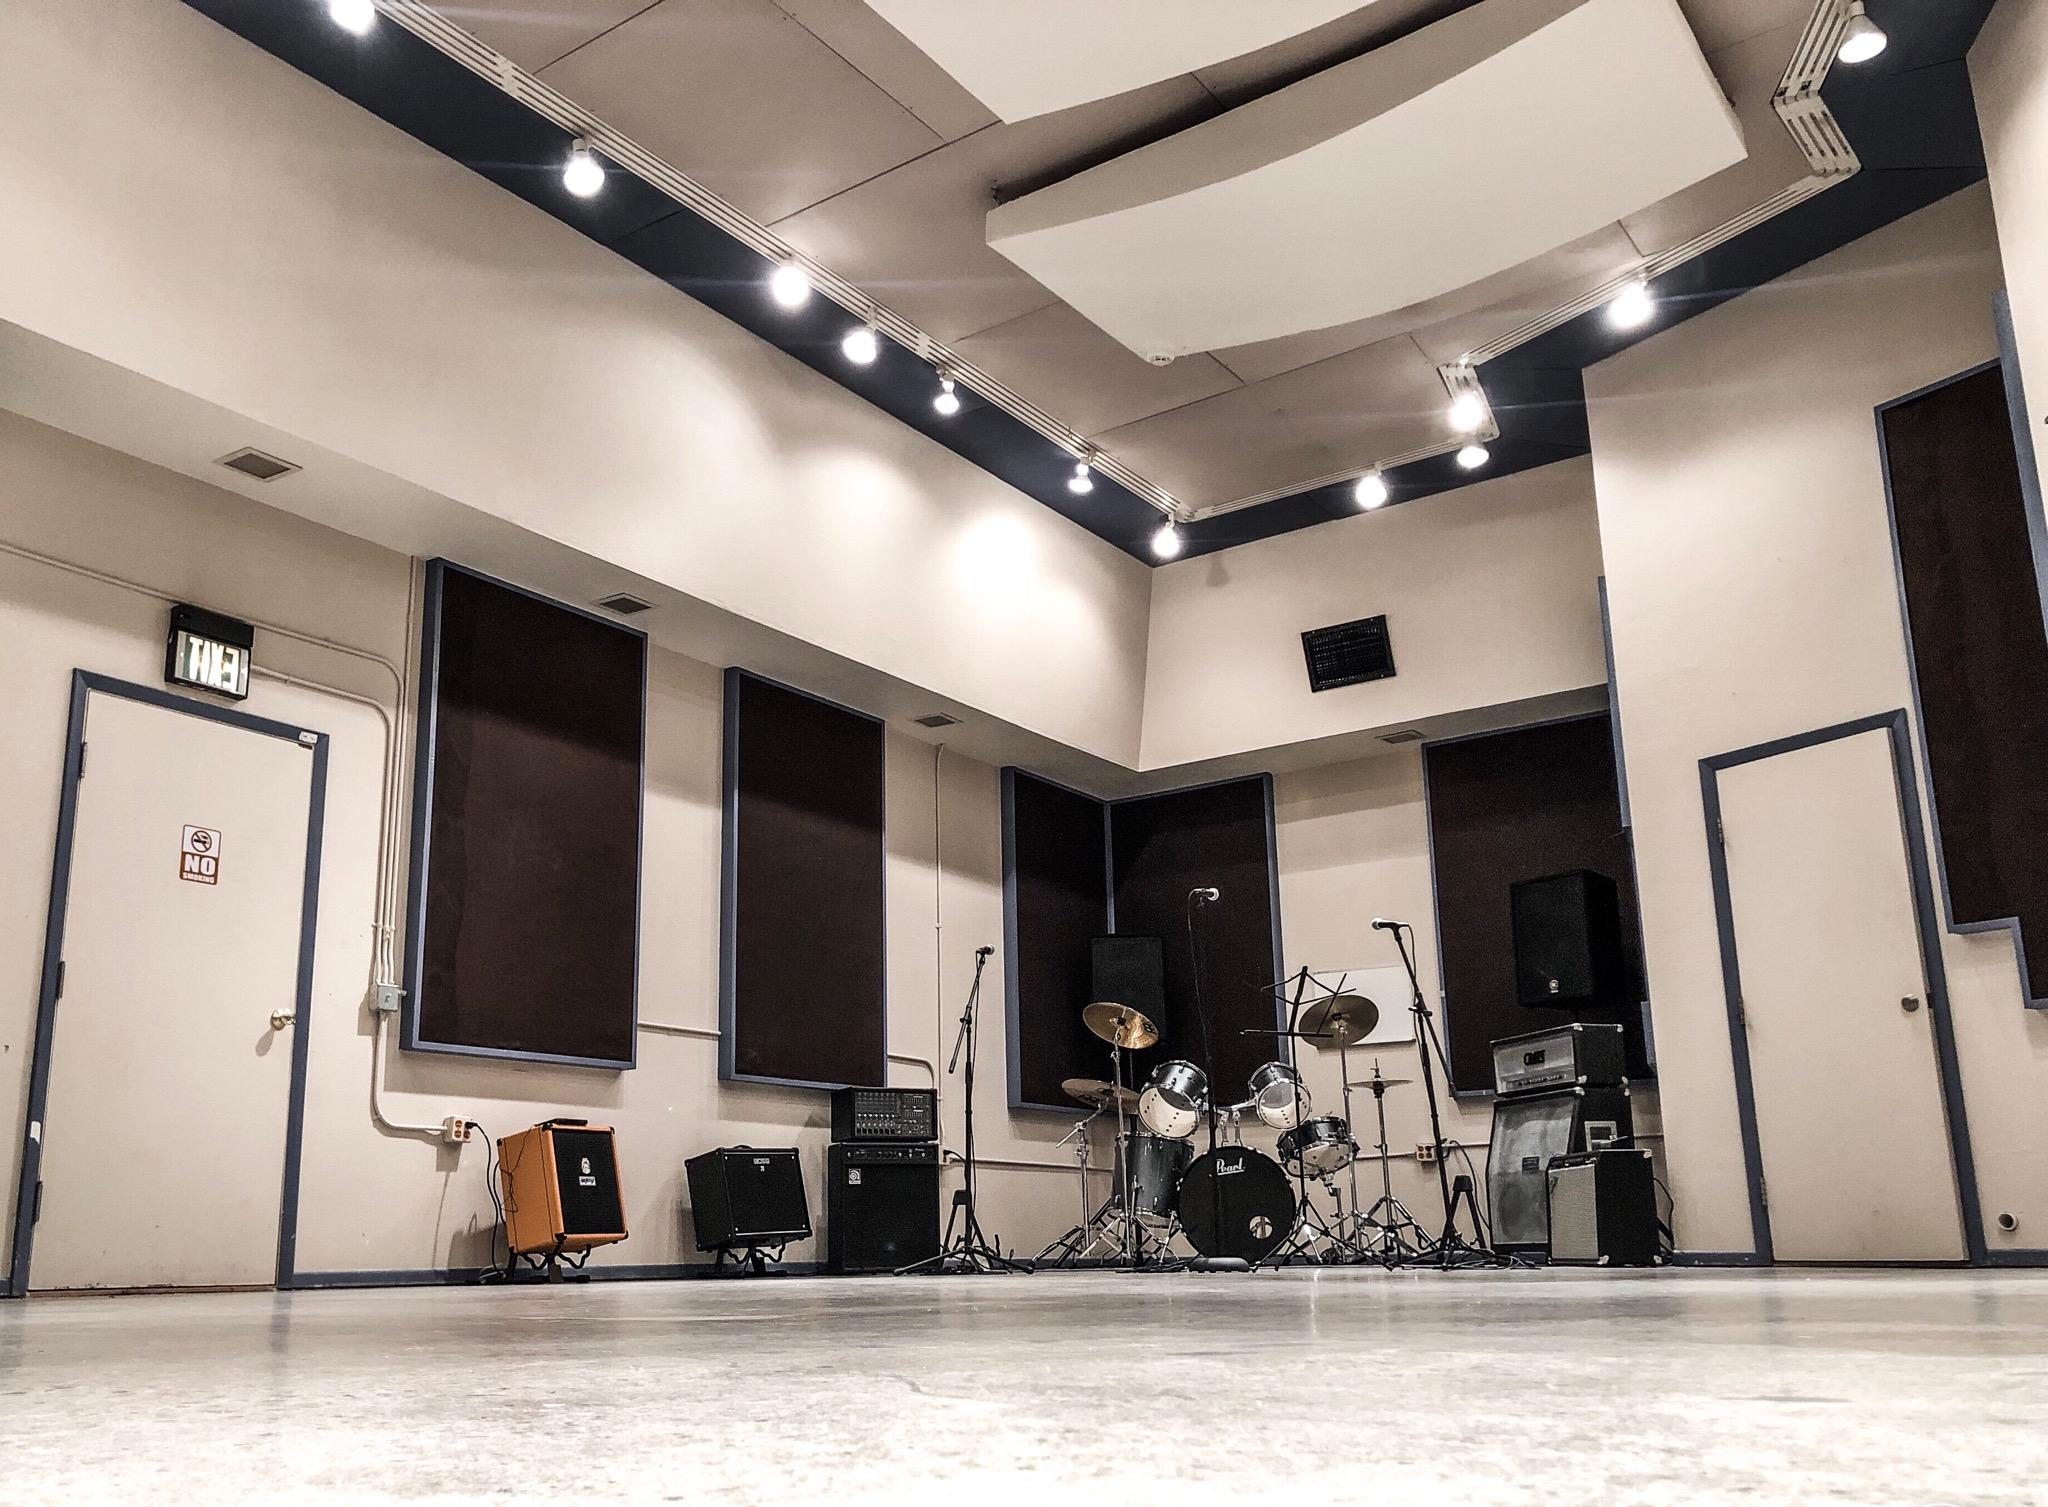 NEWS: Looking for a Rehearsal Space? Red Ear Studios to Hold Grand Opening January 18th